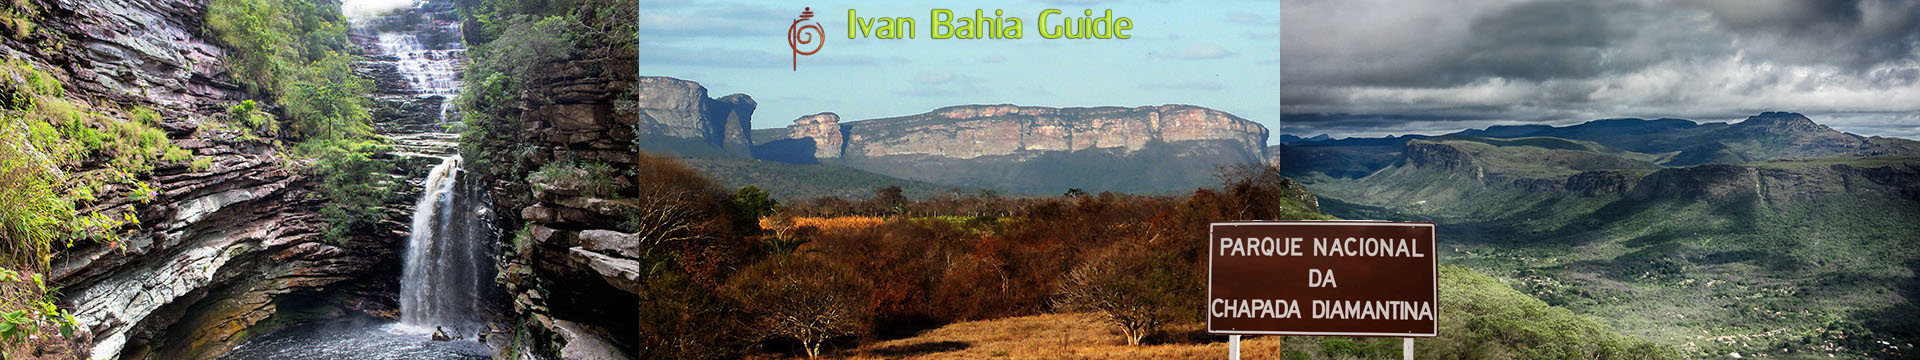 Ivan Bahia tour-guide / hiking in Chapada Diamantina National Park (aka 'the Brazilian Grand Canyon') mountain viewings for a low budget hashtag : #ChapadaDiamantinaGuide #ChapadaDiamantina #ChapadaDiamantinaTrekking #BahiaMetisse #ToursByLocals #fernandobingretourguide #IBG #FotosBahia #DiamantinaMountains #IvanBahiaReizen #IvanChapadaDiamantinaGuide #ValeDoPati #PatiValey #ValeDoCapao #Trajano #Zentur #chapadatrekking #TrilhasDiamantina #morodopaiinacio #lencois #poçoazul #ecoturismo